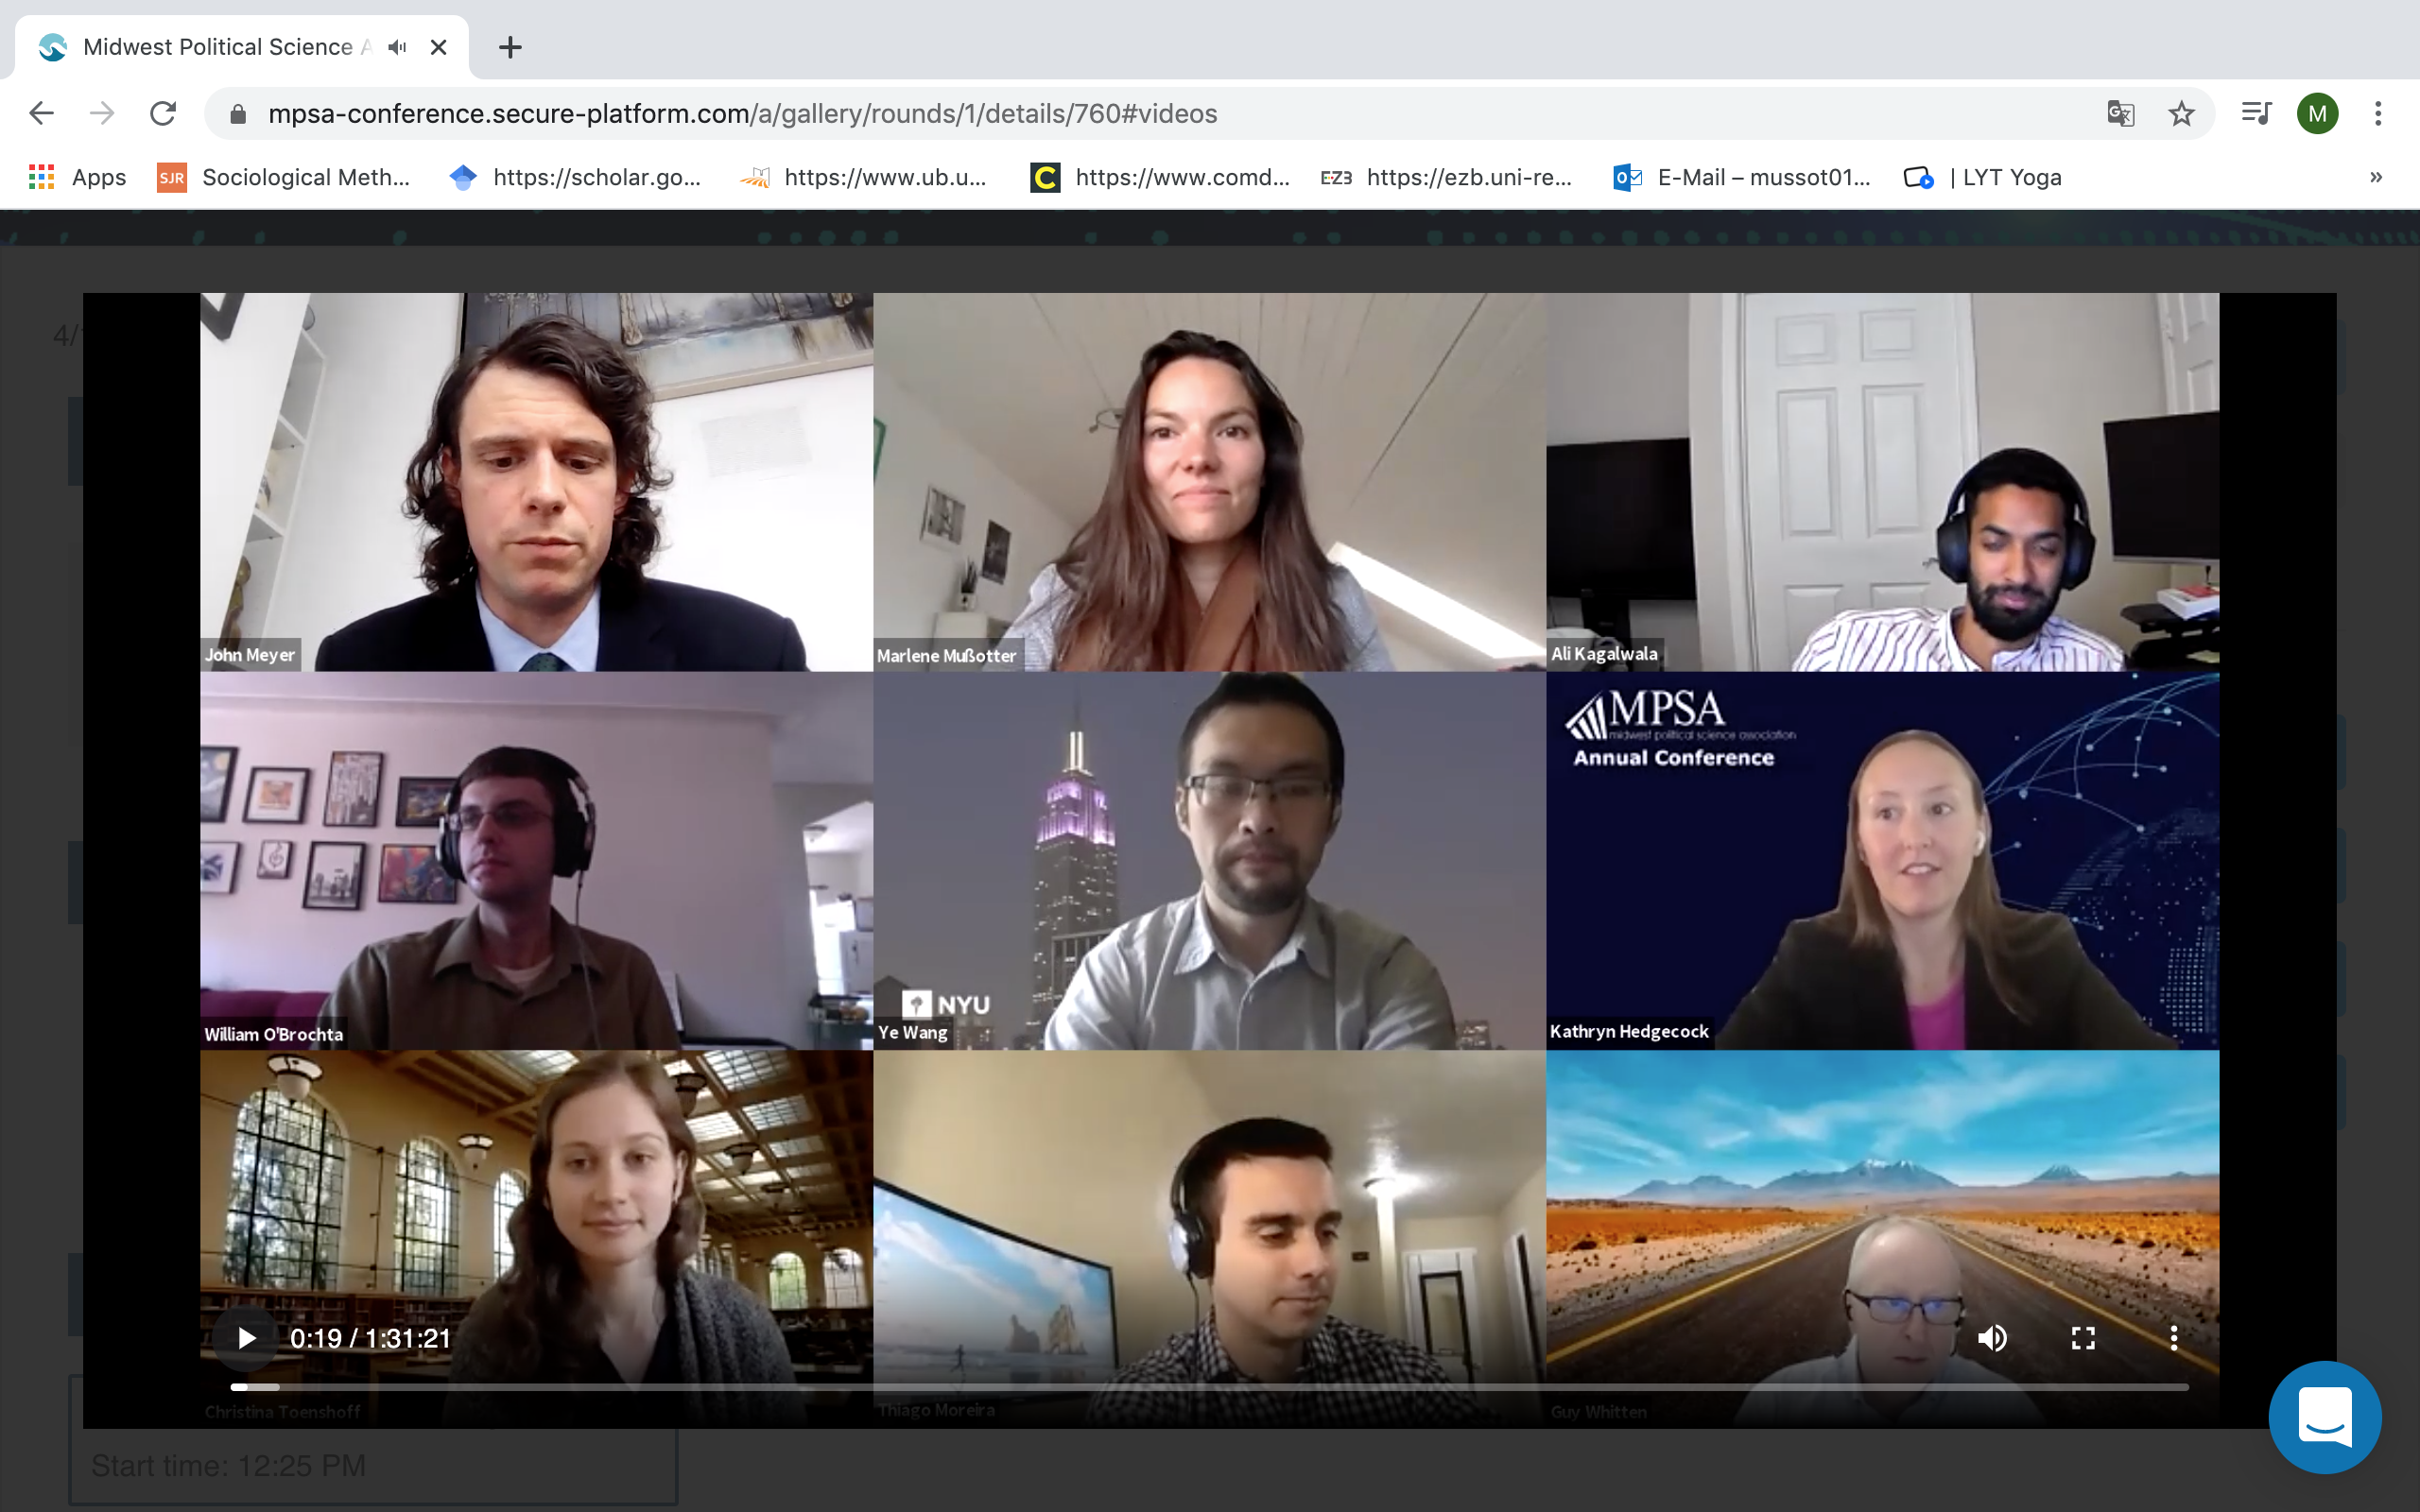 Online Meeting der Midwest Political Science Association